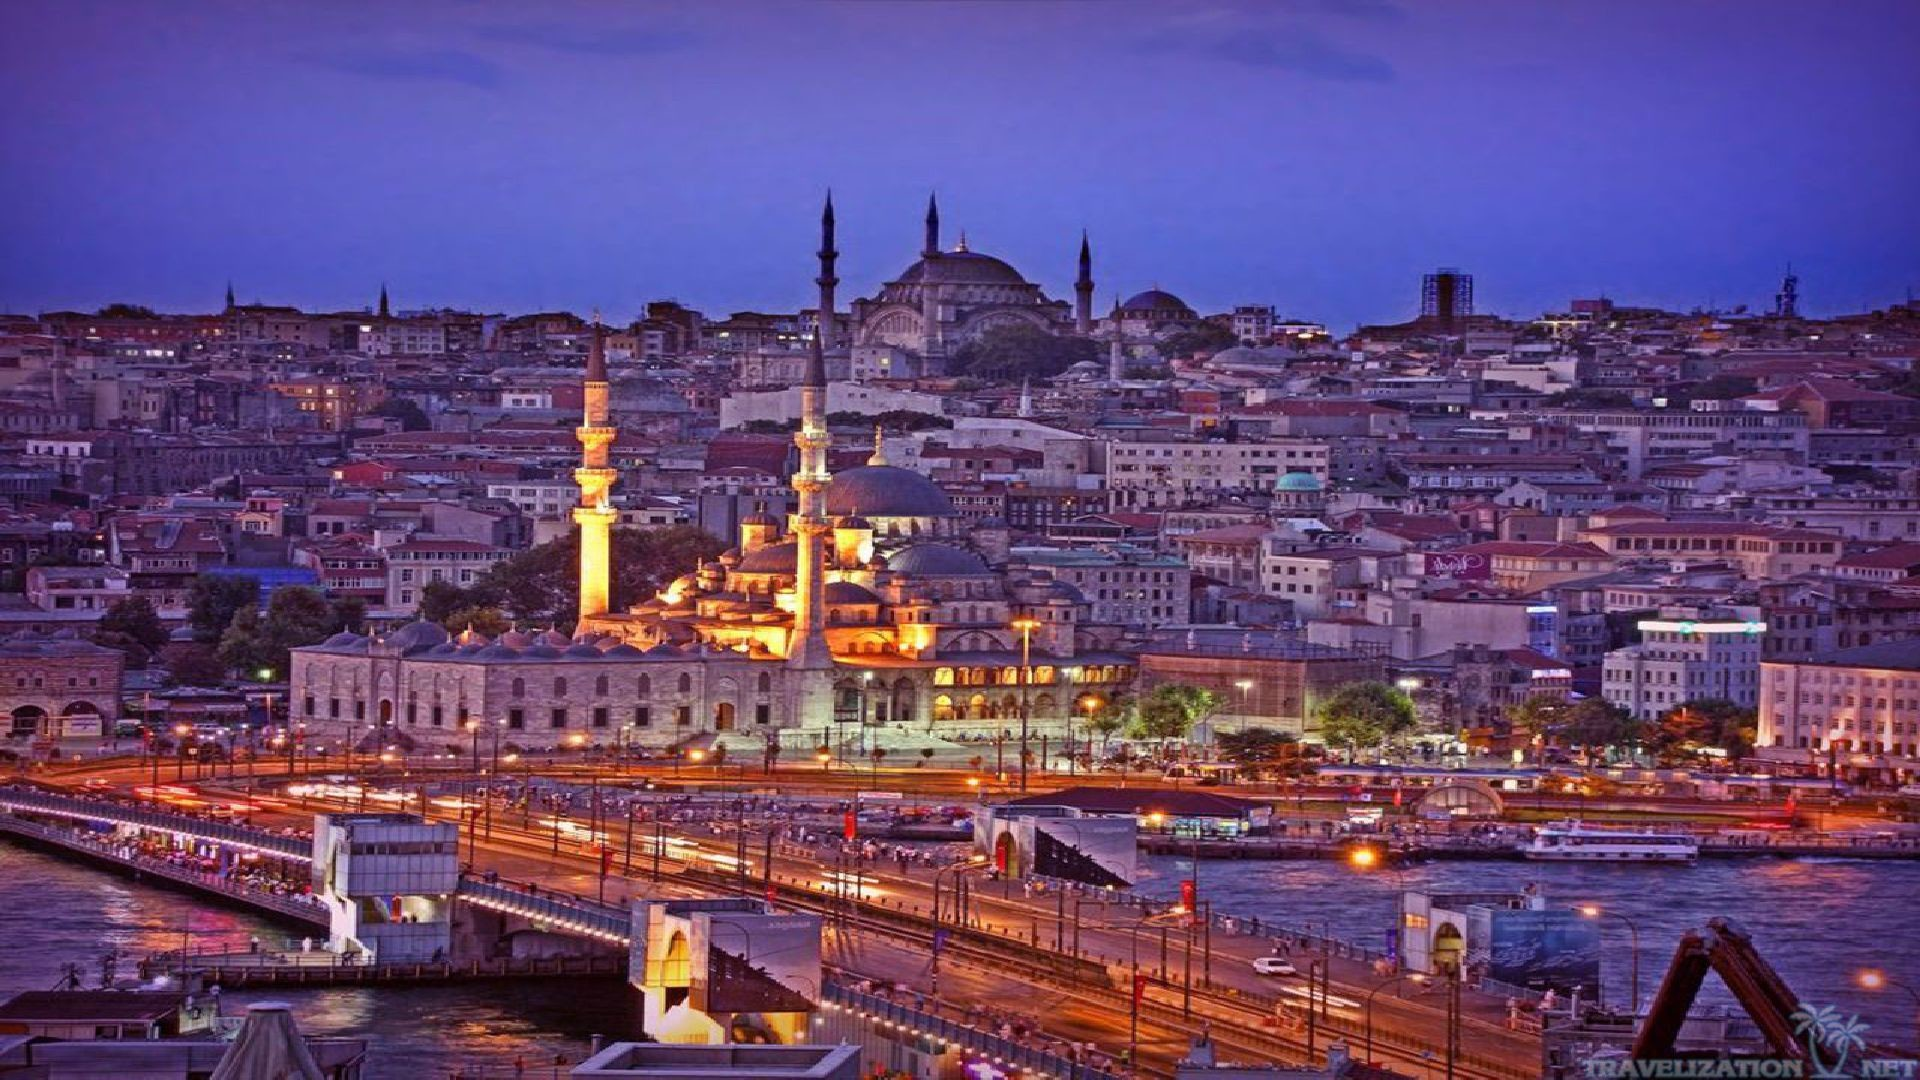 Res: 1920x1080, Full HD 1080p Istanbul Wallpapers HD, Desktop Backgrounds